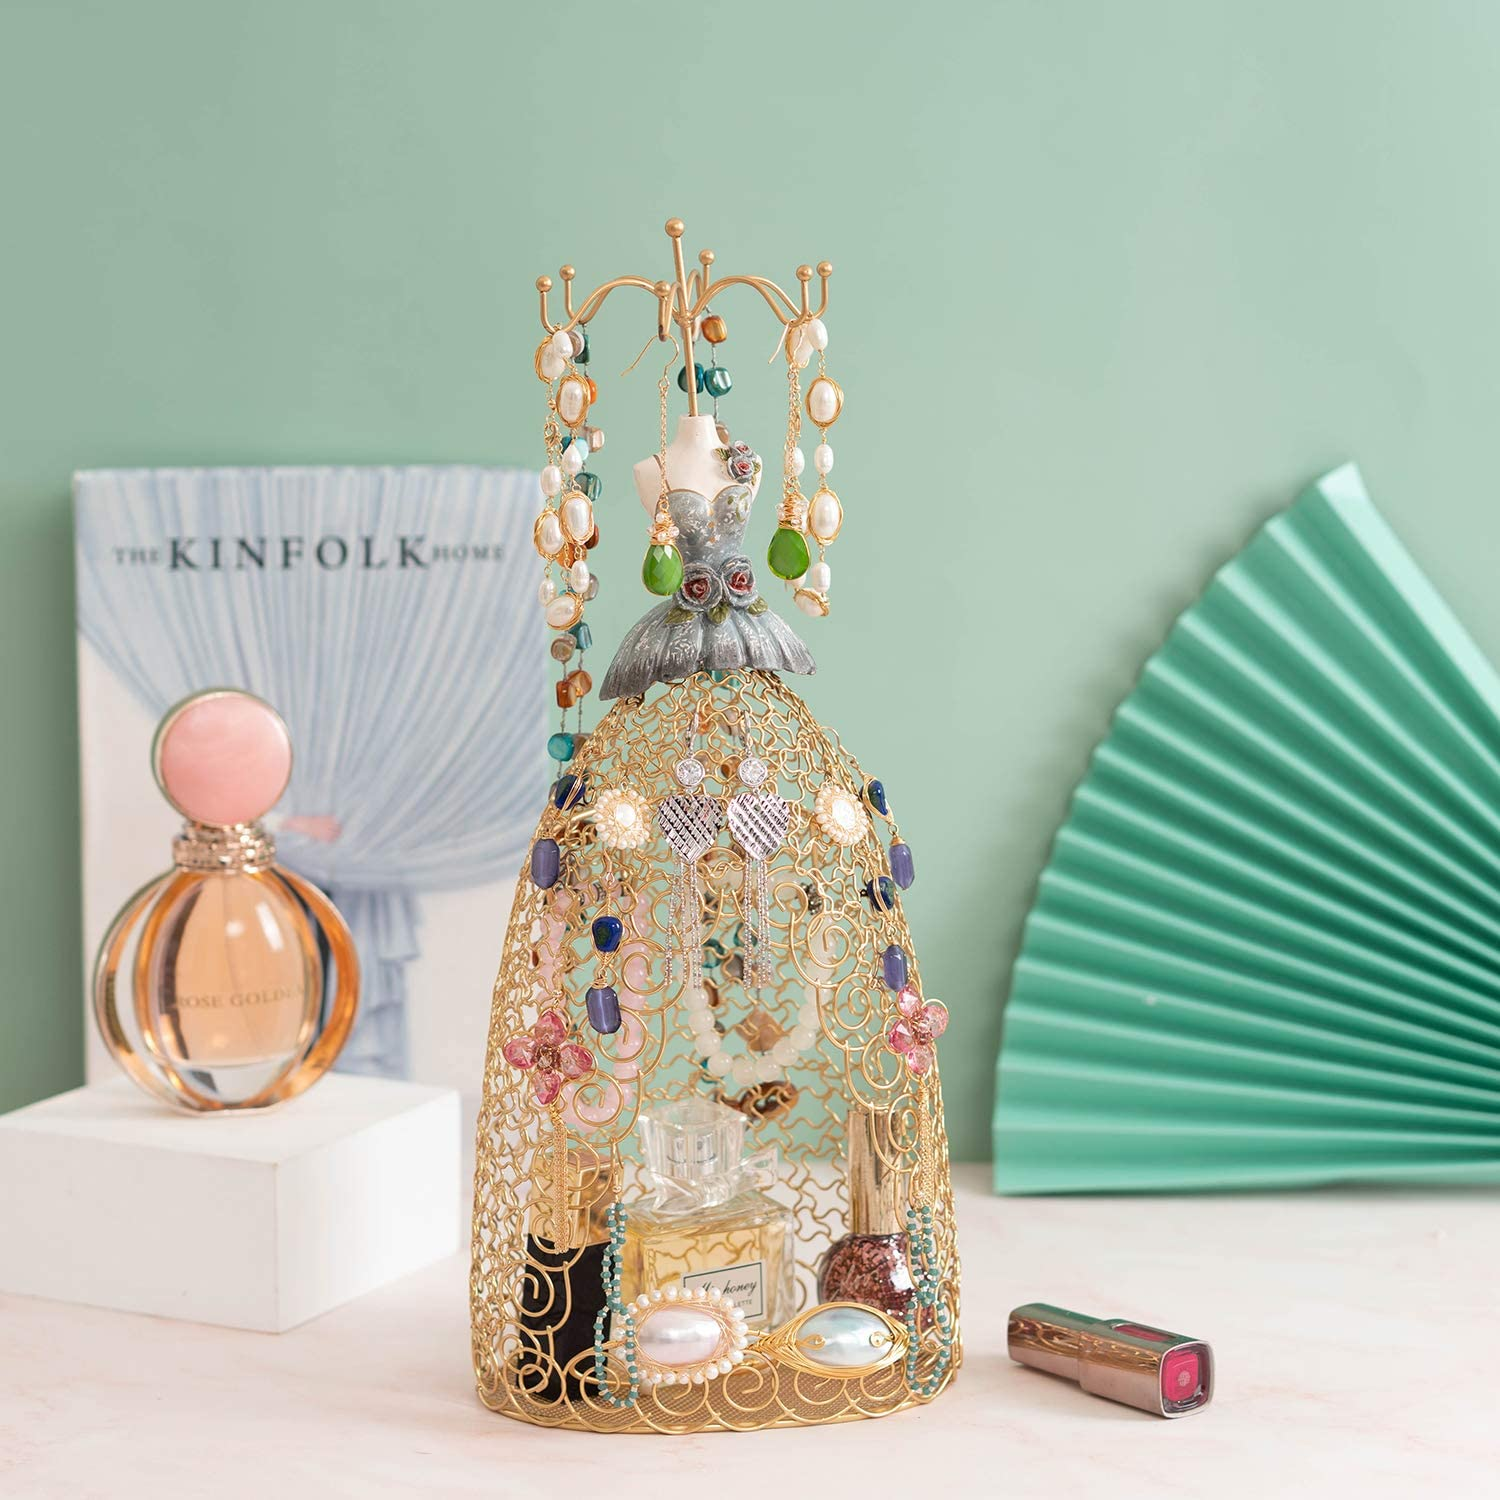 Gold Lady Mannequin Jewelry Stand Gold Jewelry Display Stand Holder Earring Stand Necklace Holder Jewelry Hanger Figure Jewelry Holder Tower Rack Organizer Lady in Dress Style